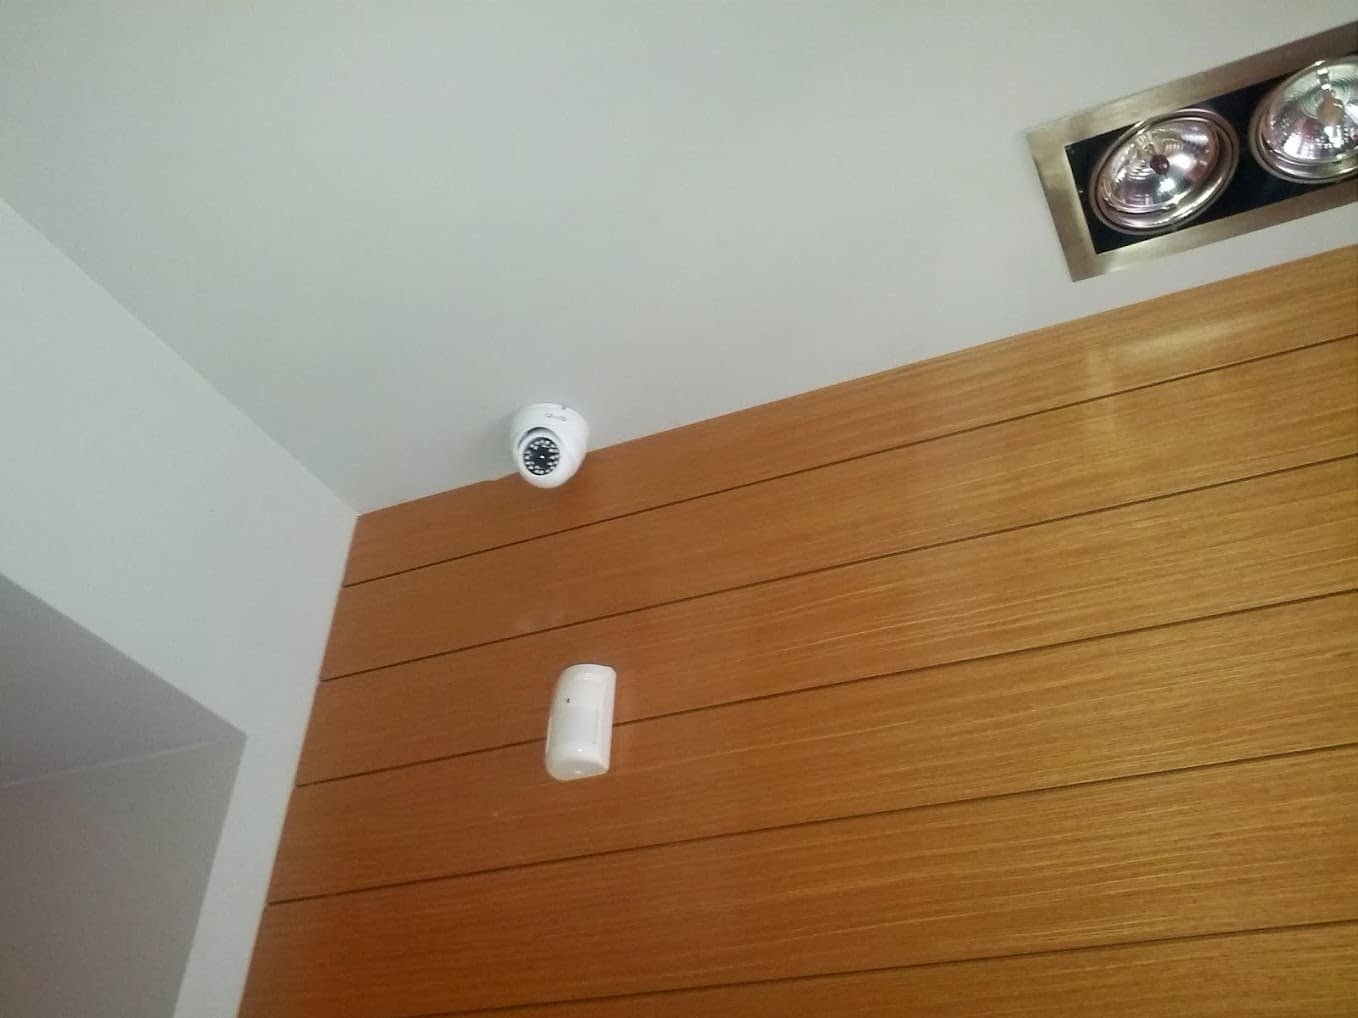 SECURITY-SYSTEMS-4